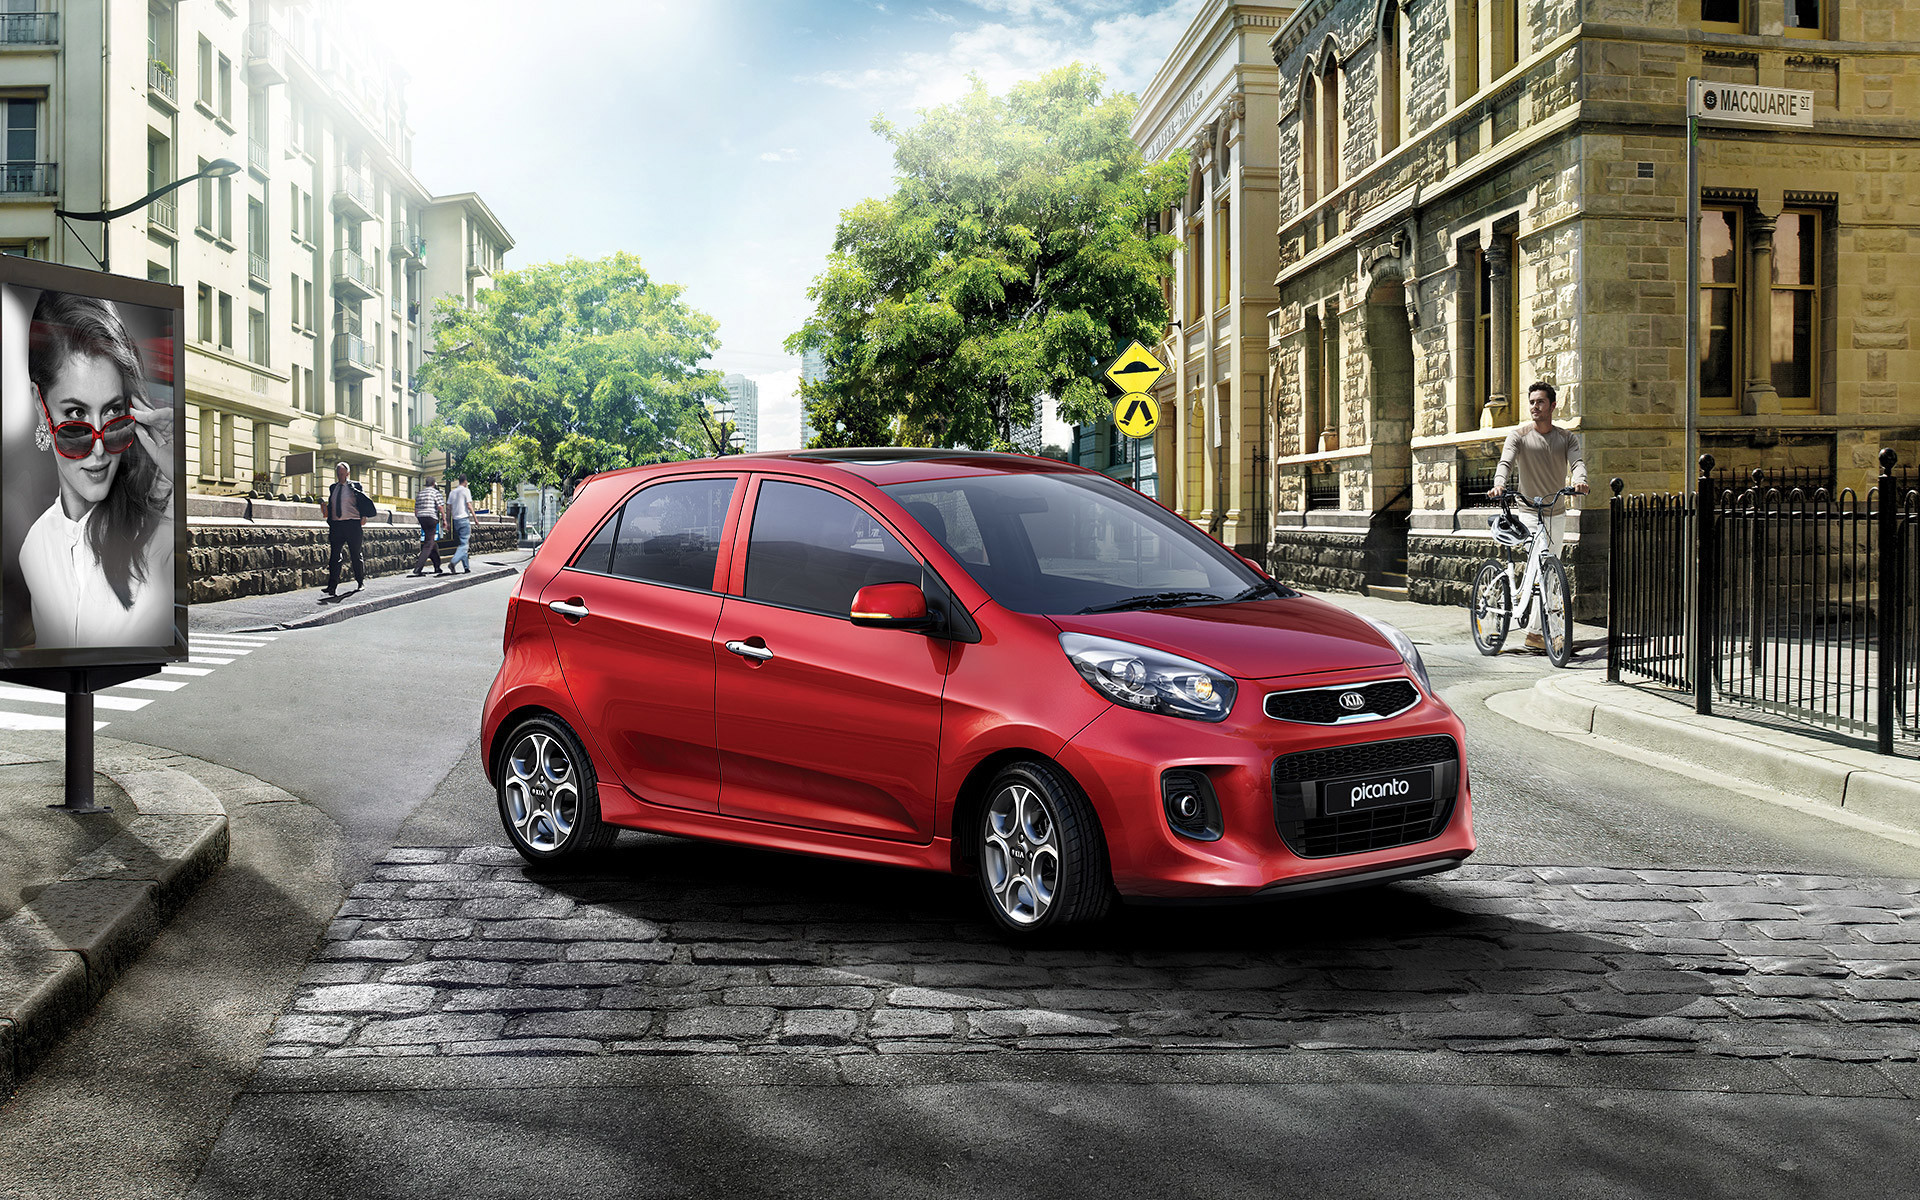 Kia Picanto 2019 Prices In Pakistan Citybook Pk